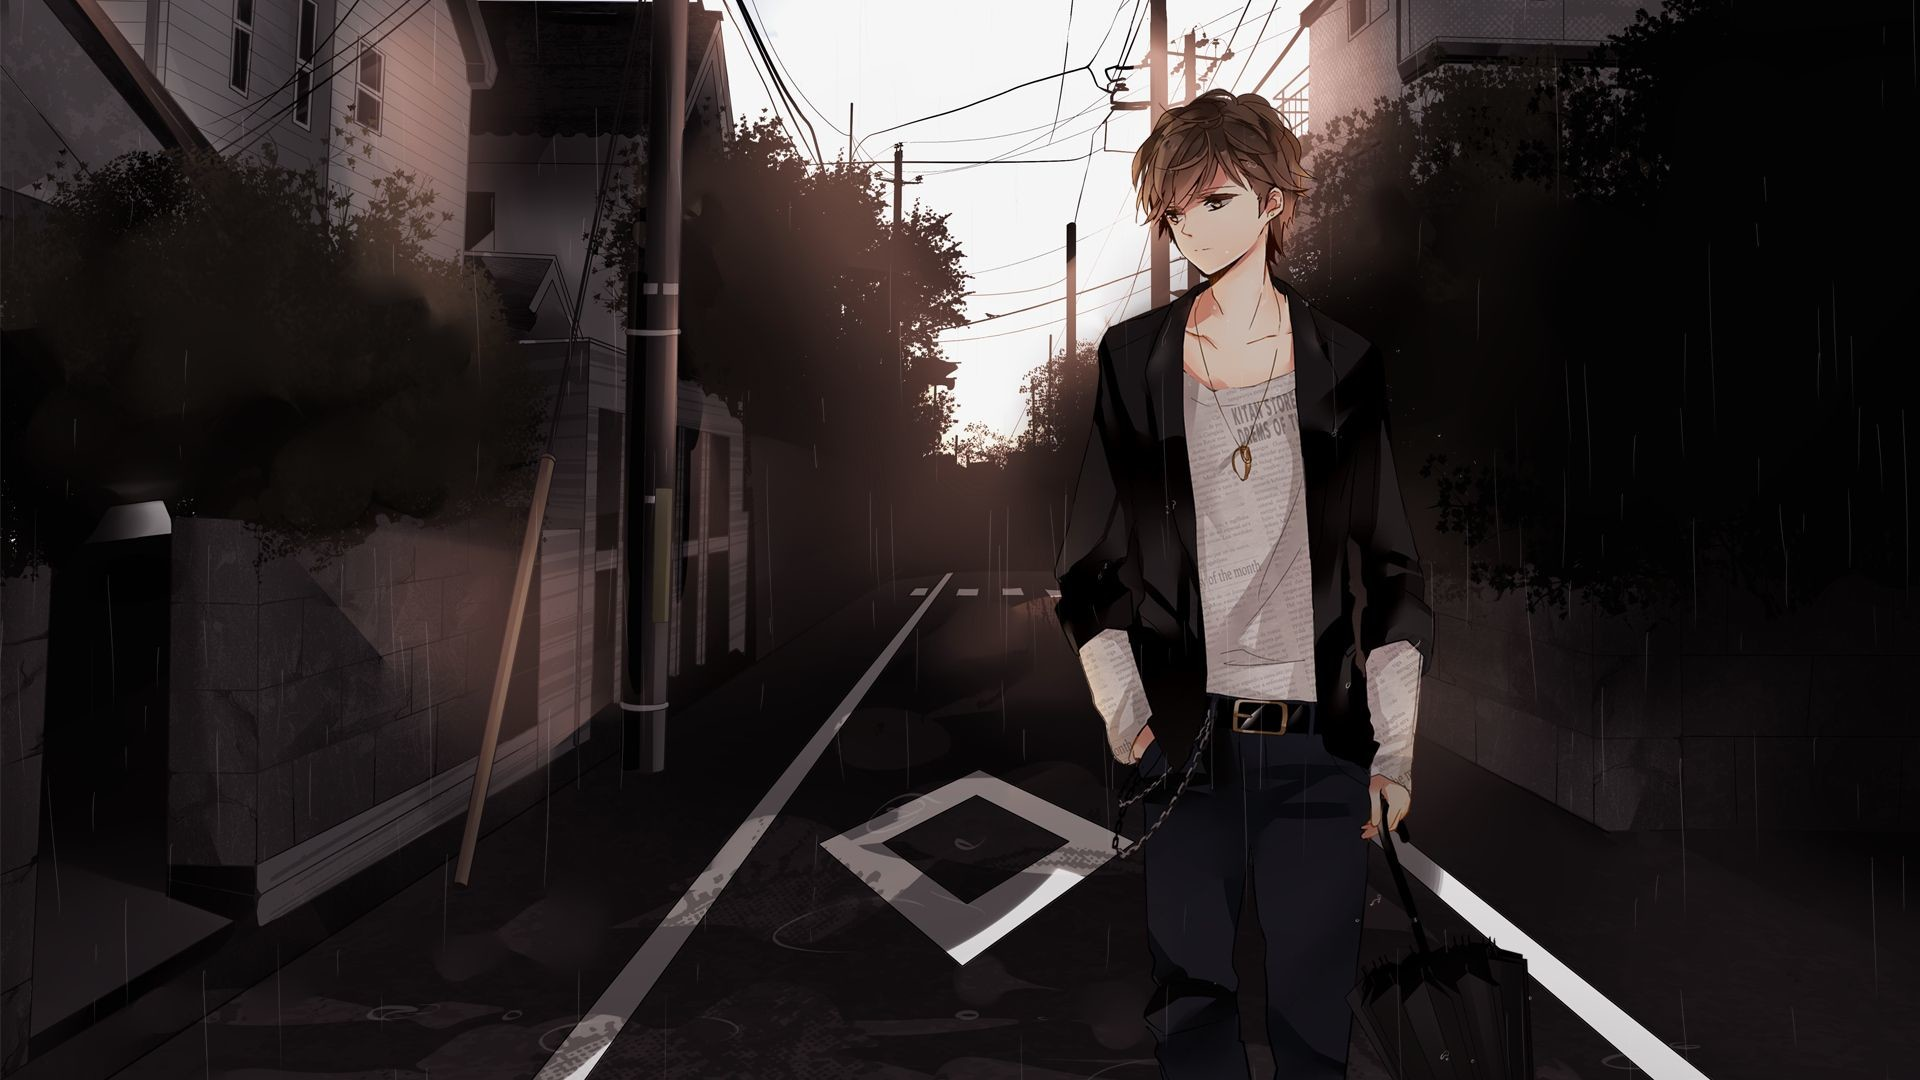 Anime Guy Wallpaper 66 pictures 1920x1080